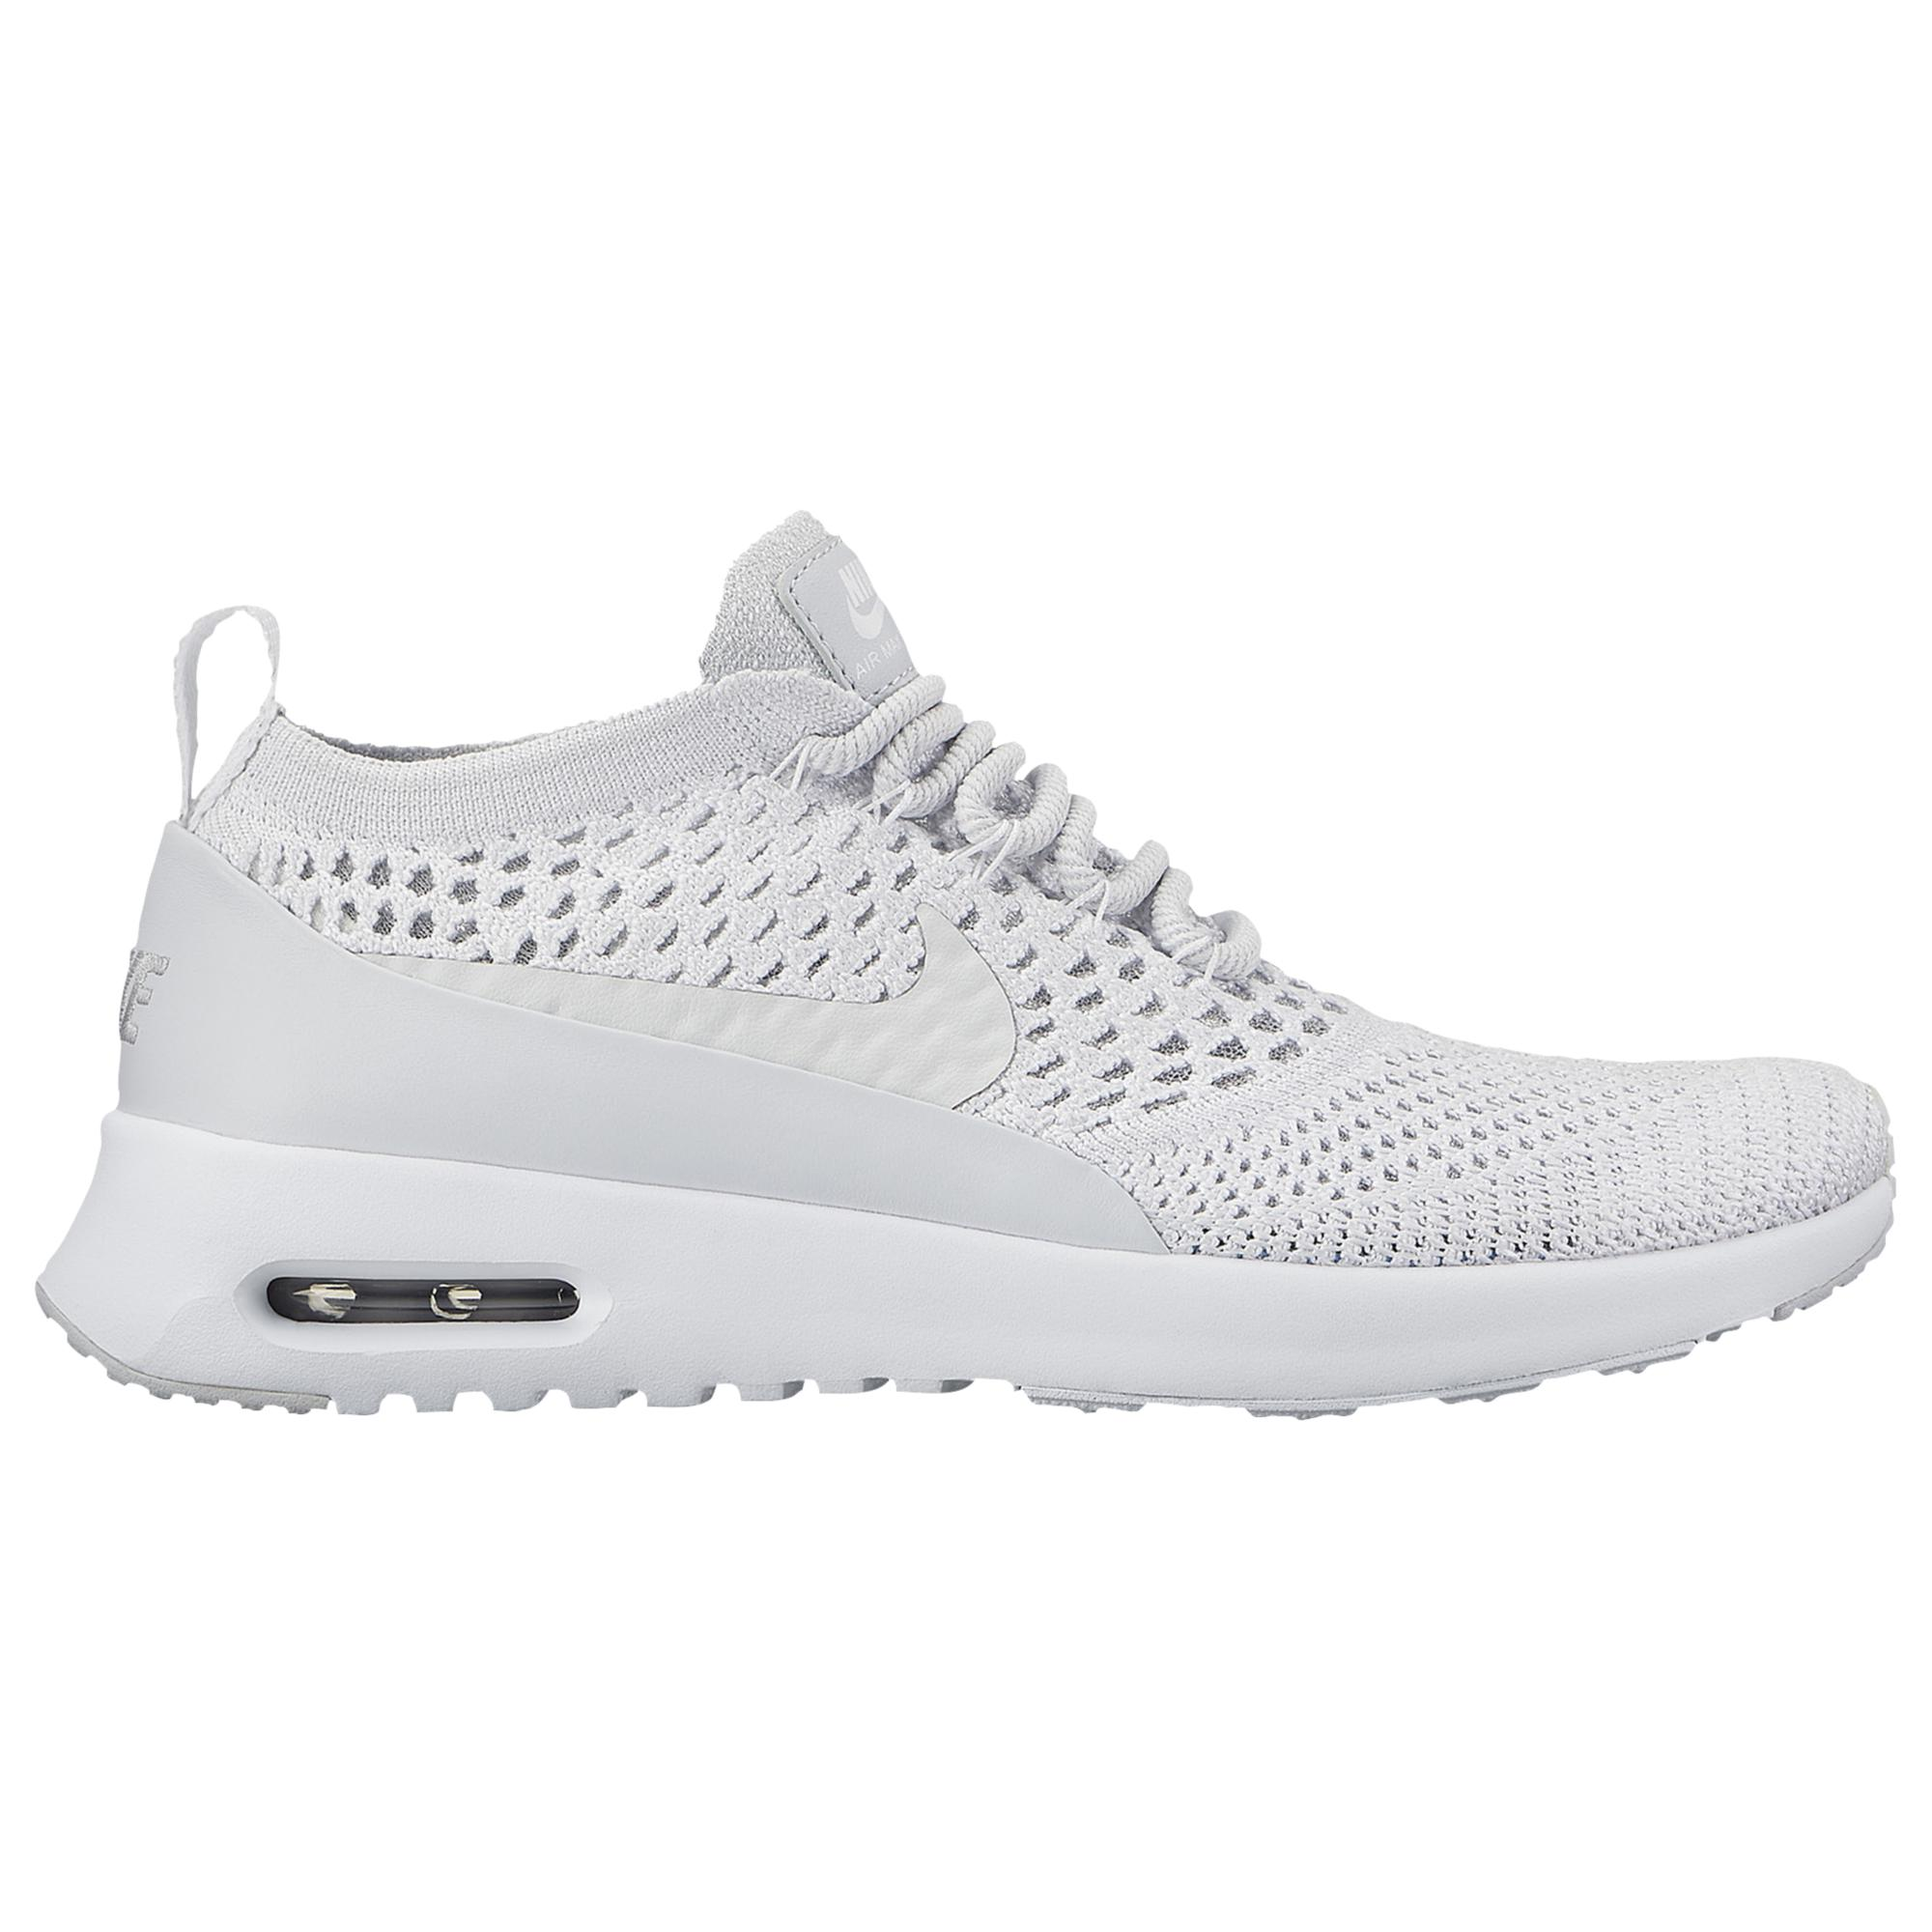 ae87807bd810 Lyst - Nike Air Max Thea Ultra Flyknit in White